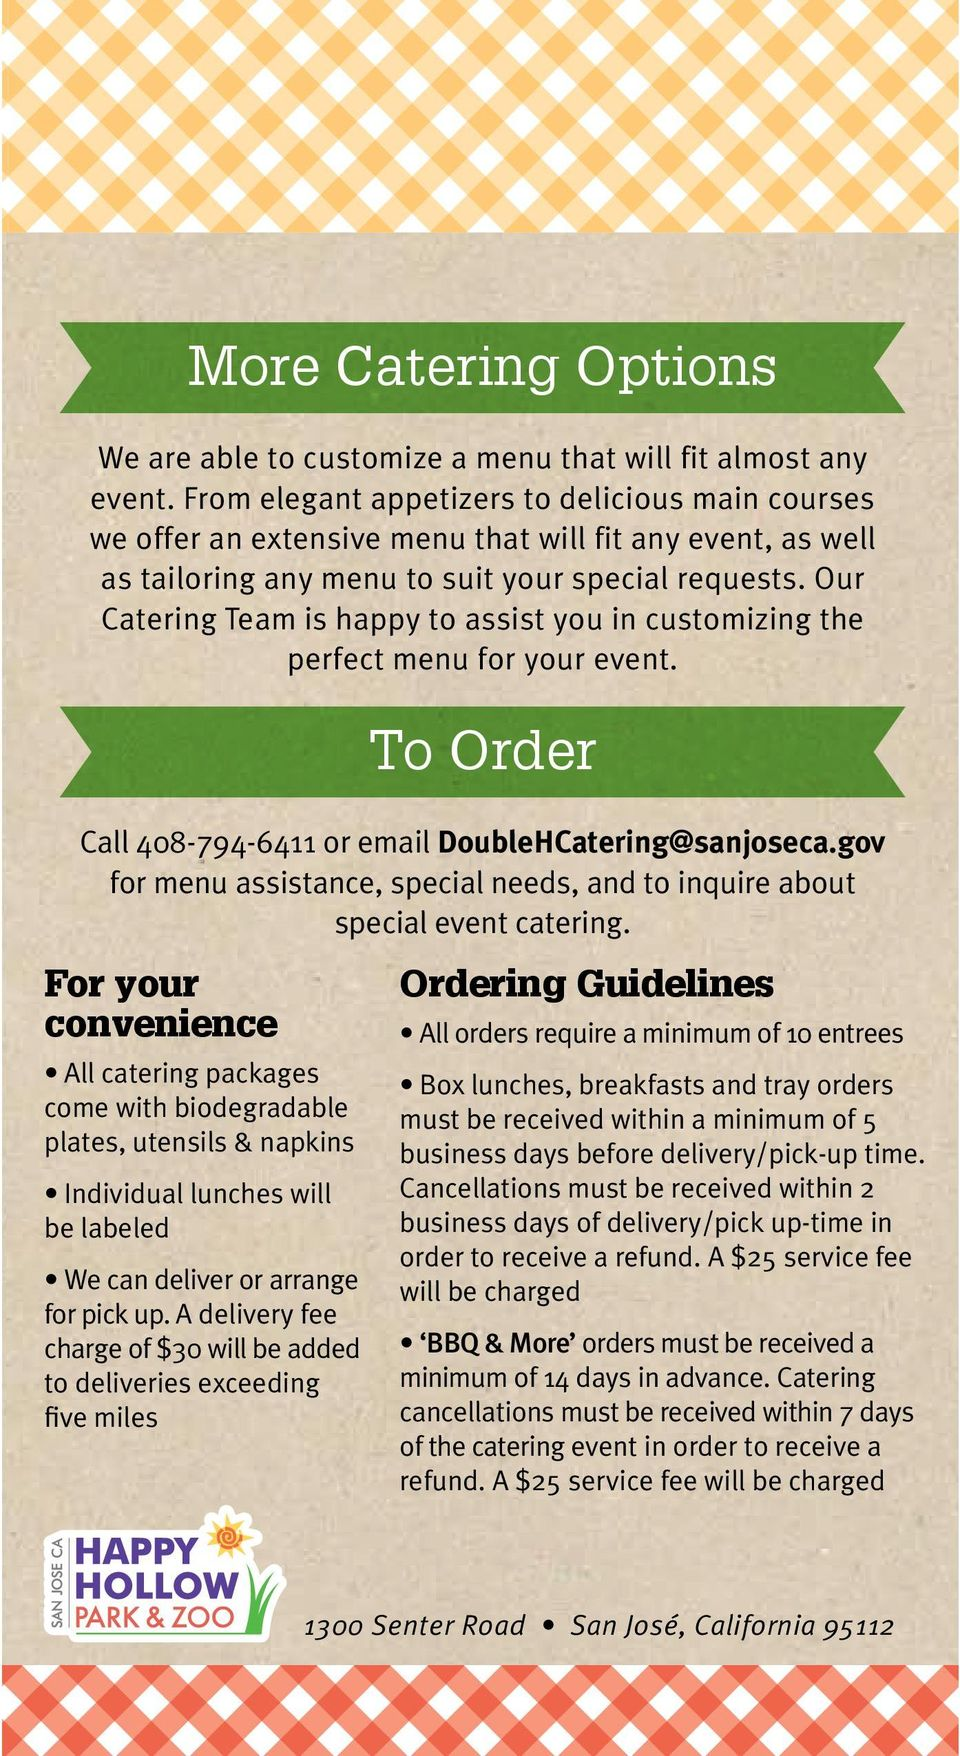 Our Catering Team is happy to assist you in customizing the perfect menu for your event. To Order Call 408-794-6411 or email DoubleHCatering@sanjoseca.